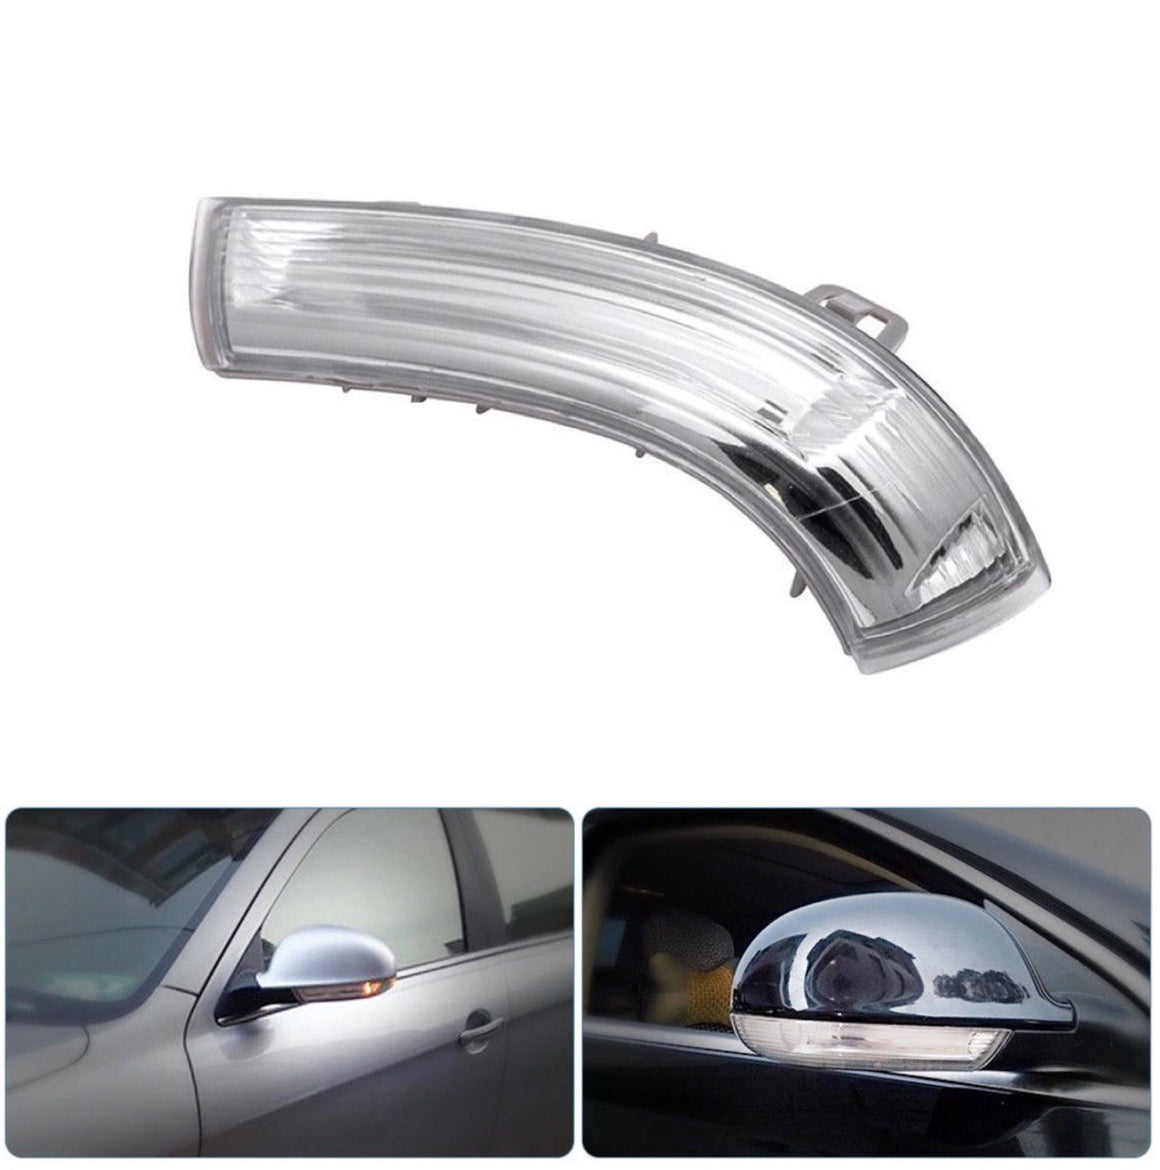 VW GOLF Left Side Wing Mirror Indicator For MK5 PASSAT GTI JETTA